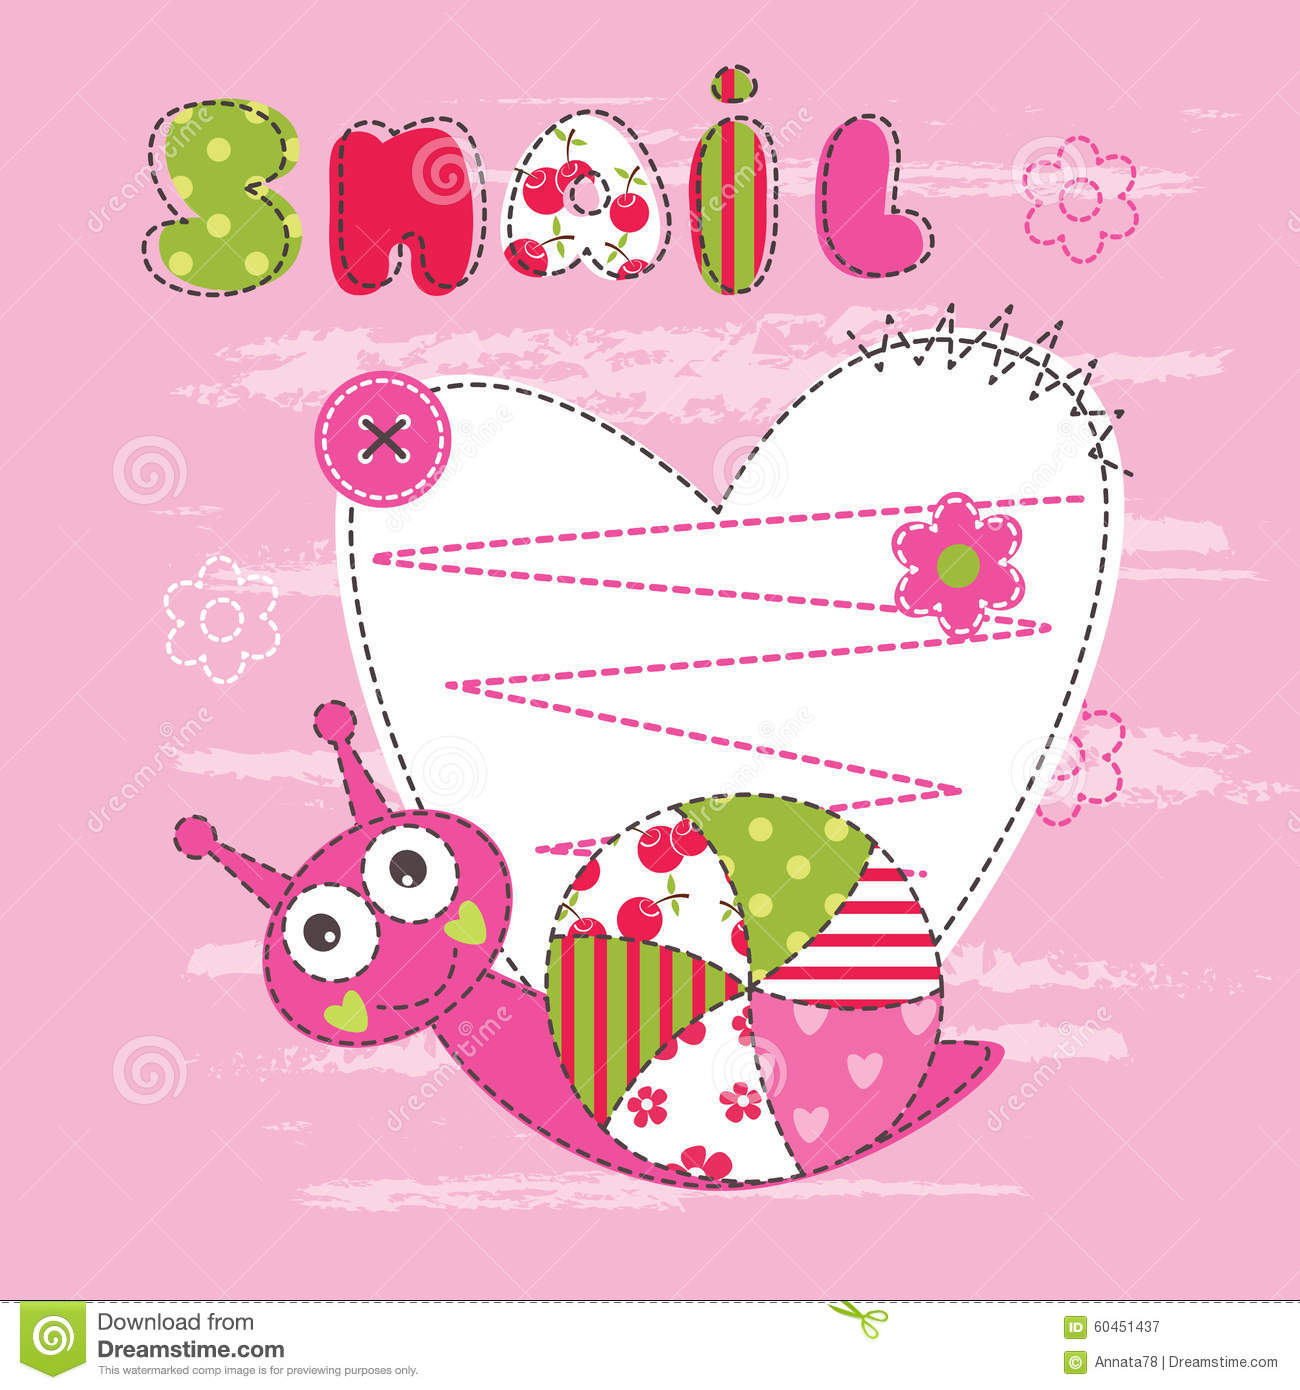 Snail Shower Design Ideas: Cute Baby Background With Snail Stock Vector